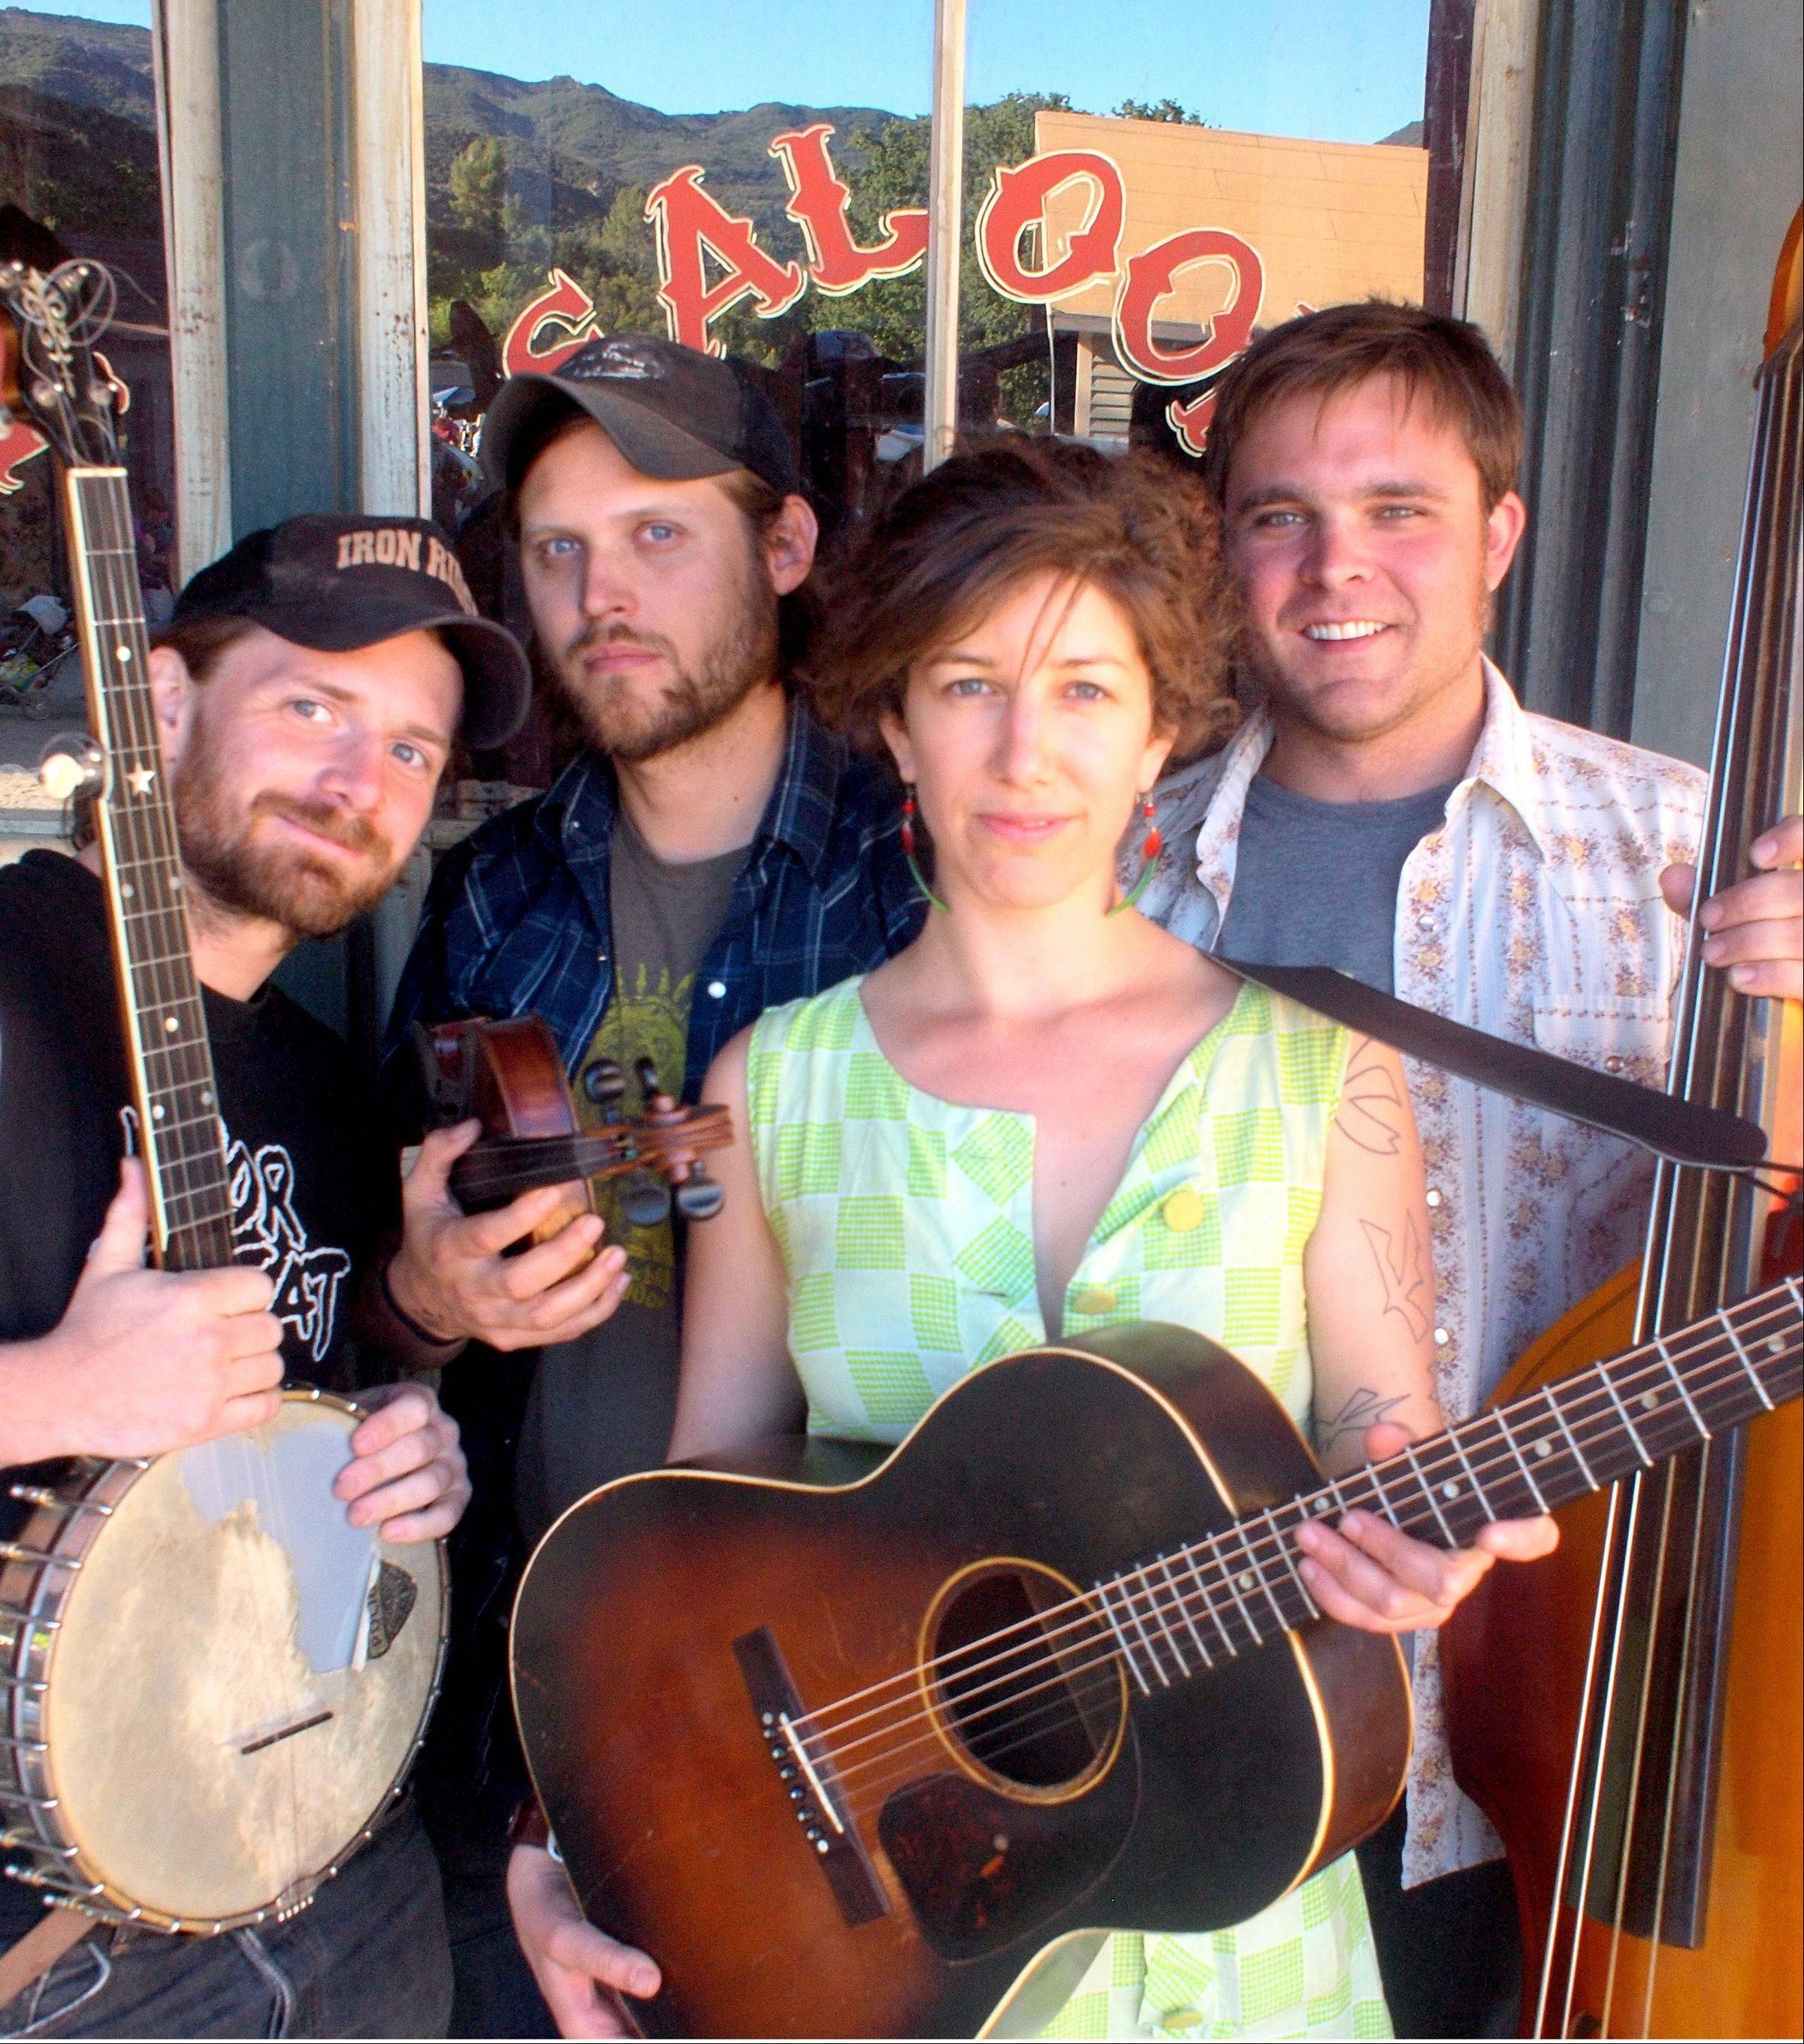 Old Sledge, the Virginia folk string band, will be one of the featured performers on Sunday, July 17 at Woodstock Folk Festival.